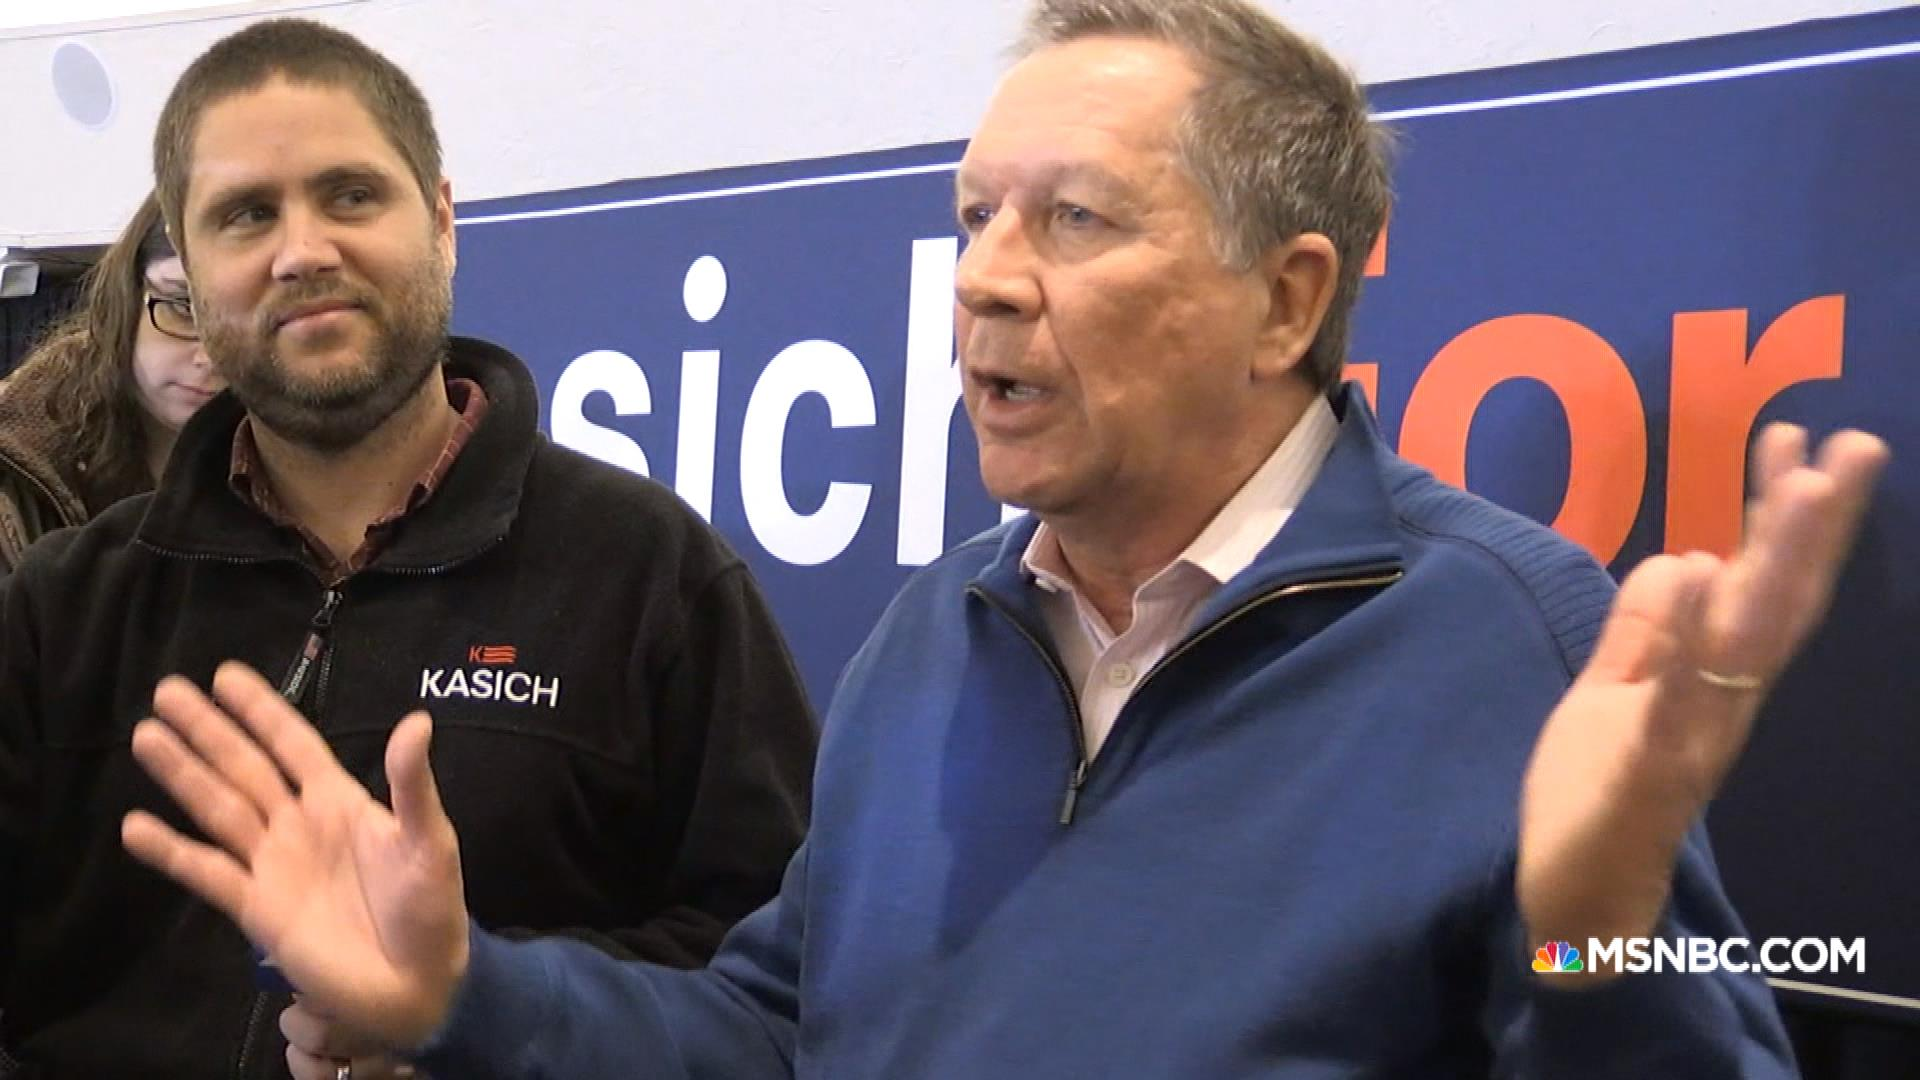 Kasich: 'I'm with Harry Potter'